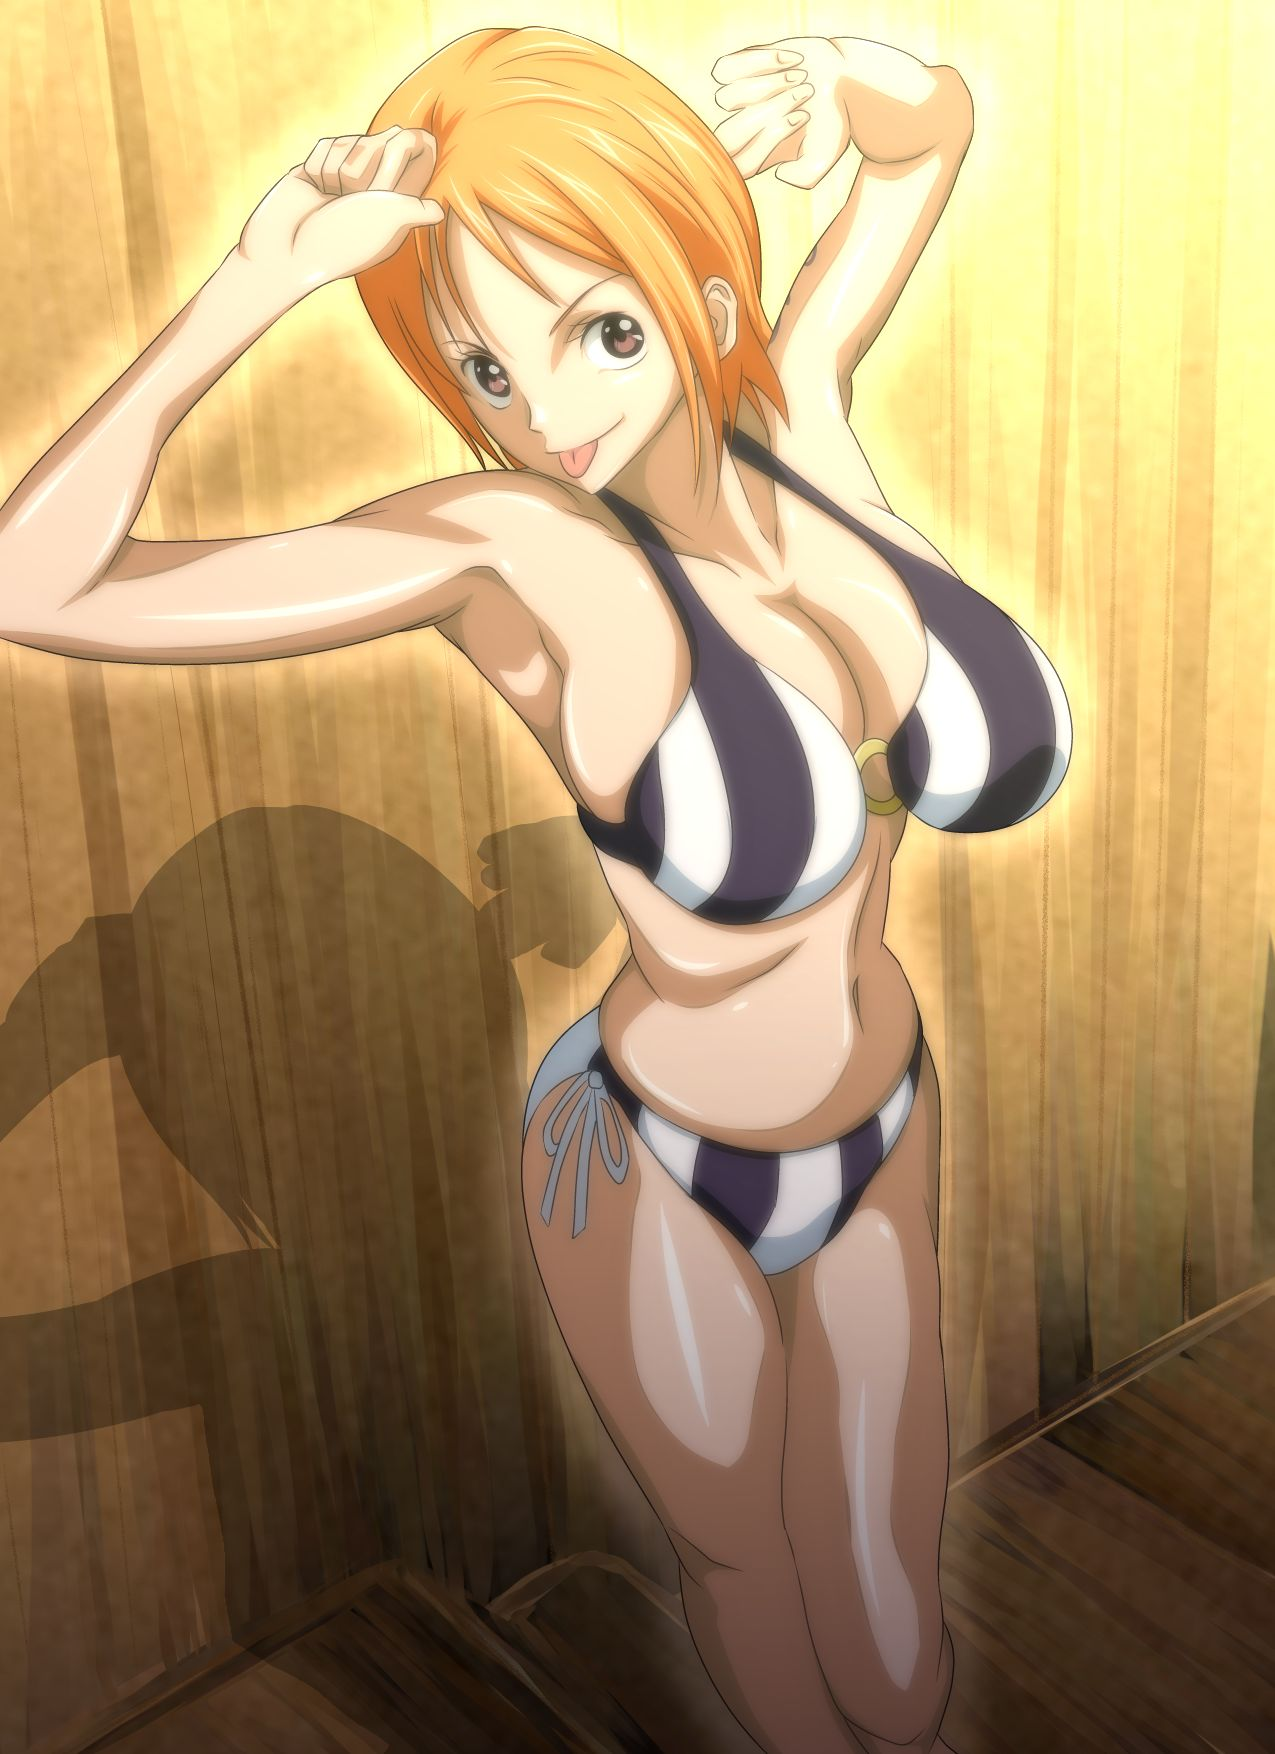 Cup size nami League of